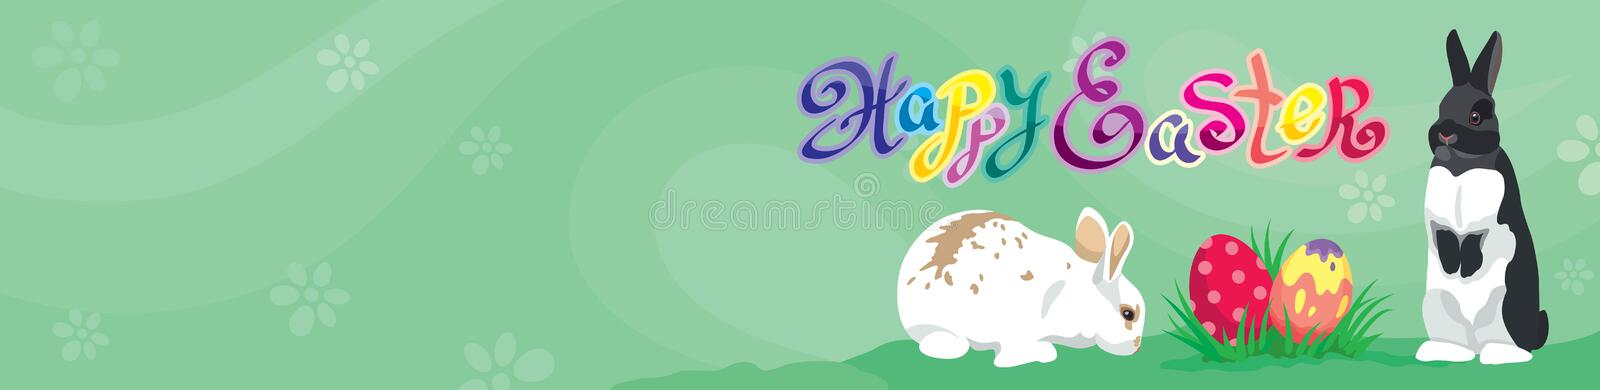 Easter template Web banner Header with Happy Easter text. Easter rabbits, colorful Easter eggs and copy blank space royalty free illustration